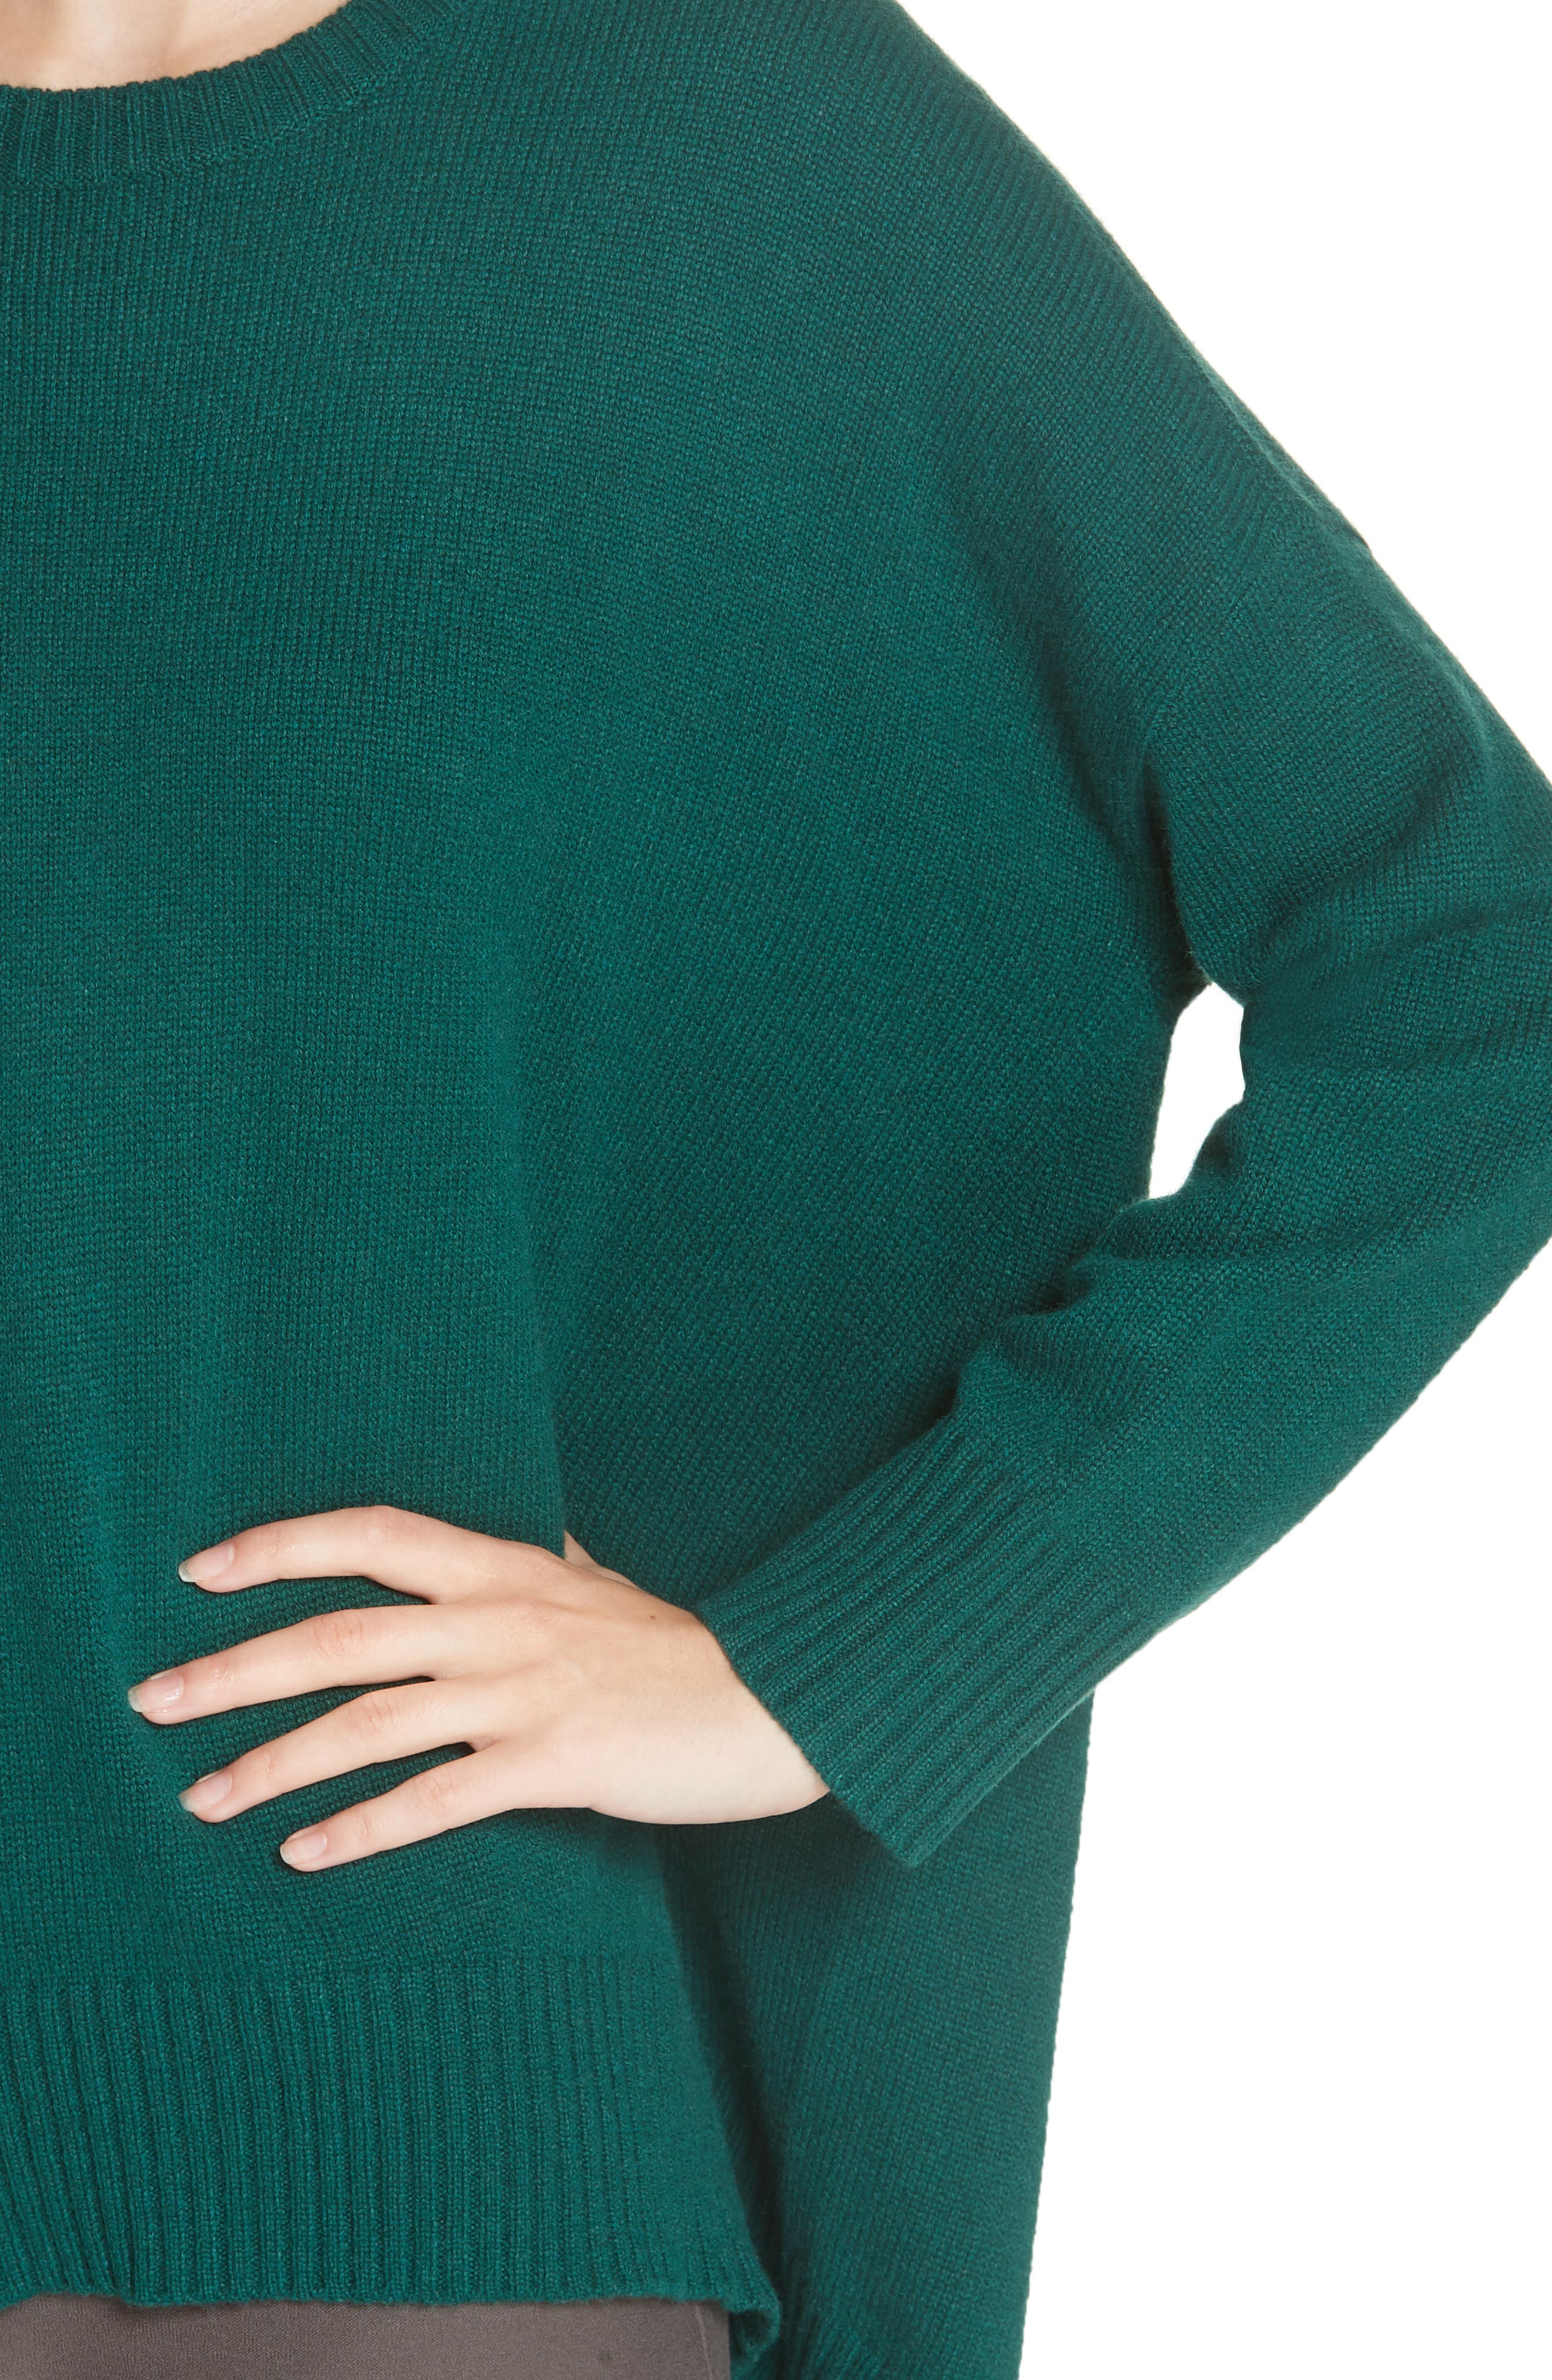 Cashmere & Wool Blend Oversize Sweater,                             Alternate thumbnail 4, color,                             PINE